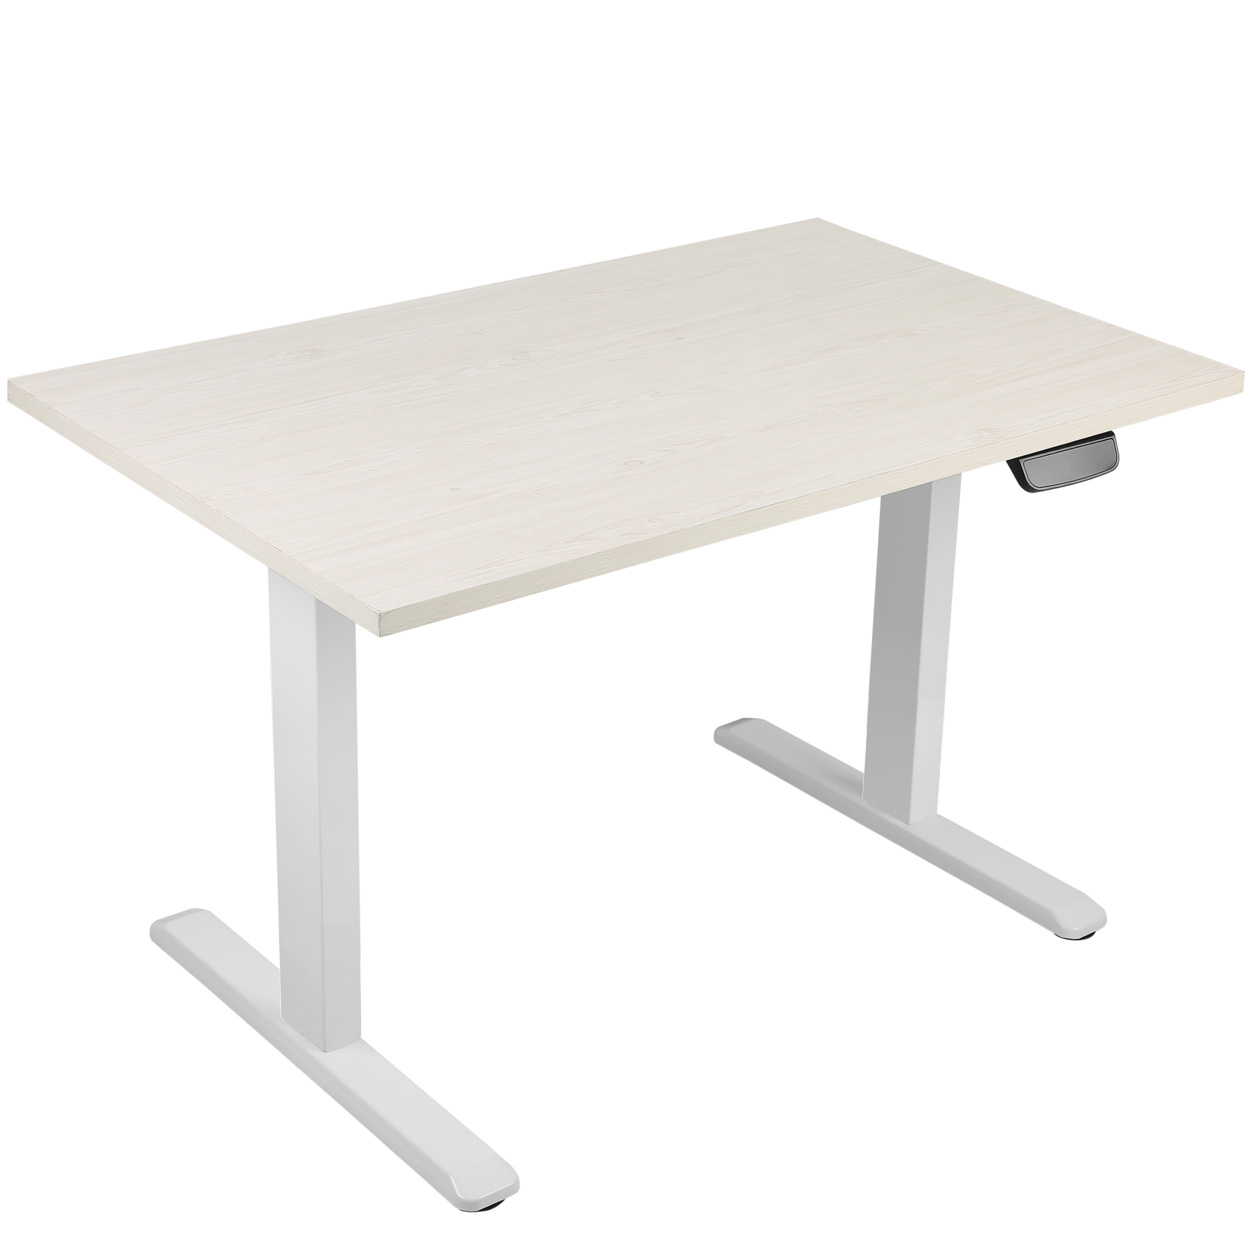 Single Motor 2-Stage Electric Adjustable Height Sit or Stand Desk Frame - White